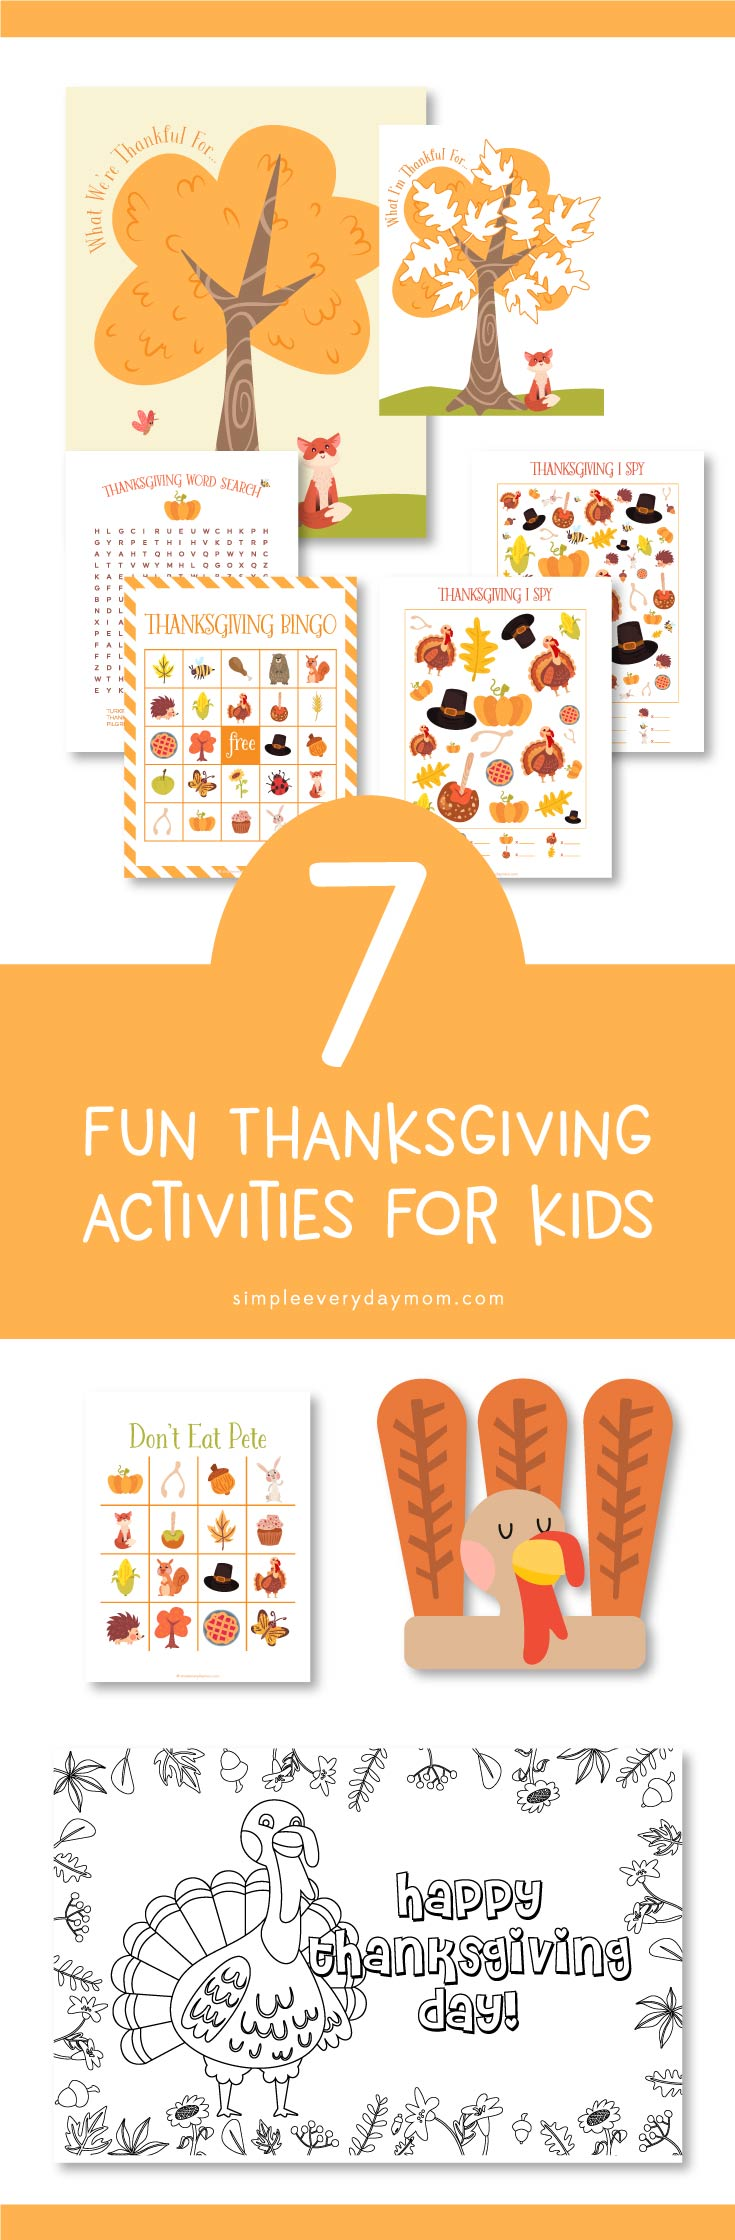 Grande Spend Quality Time Toger Doingse Thanksgiving Activities Create Some New Family Traditions Kids To Celebrate Gratitude Thanksgiving Activities baby Thanksgiving Games For Kids